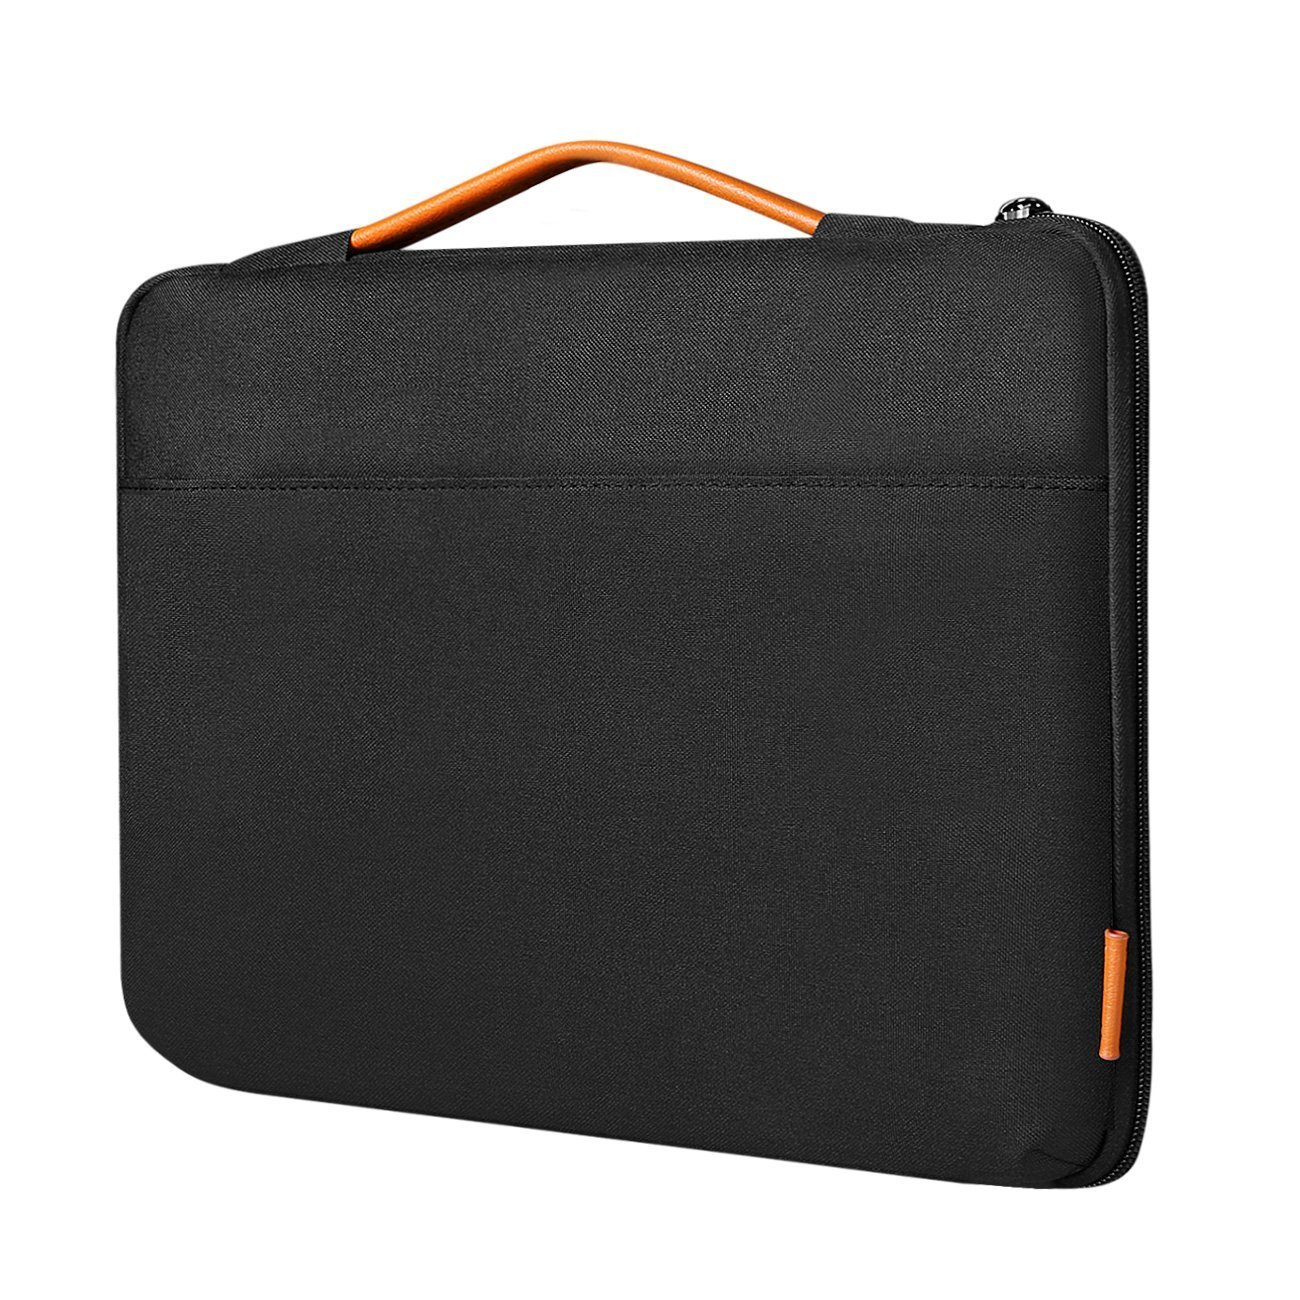 Inateck Shockproof Laptop Sleeve Case Briefcase Spill Resistant for 15-15.6 Inch Laptops, Notebooks, Ultrabooks, Netbooks, with Extra Storage Space